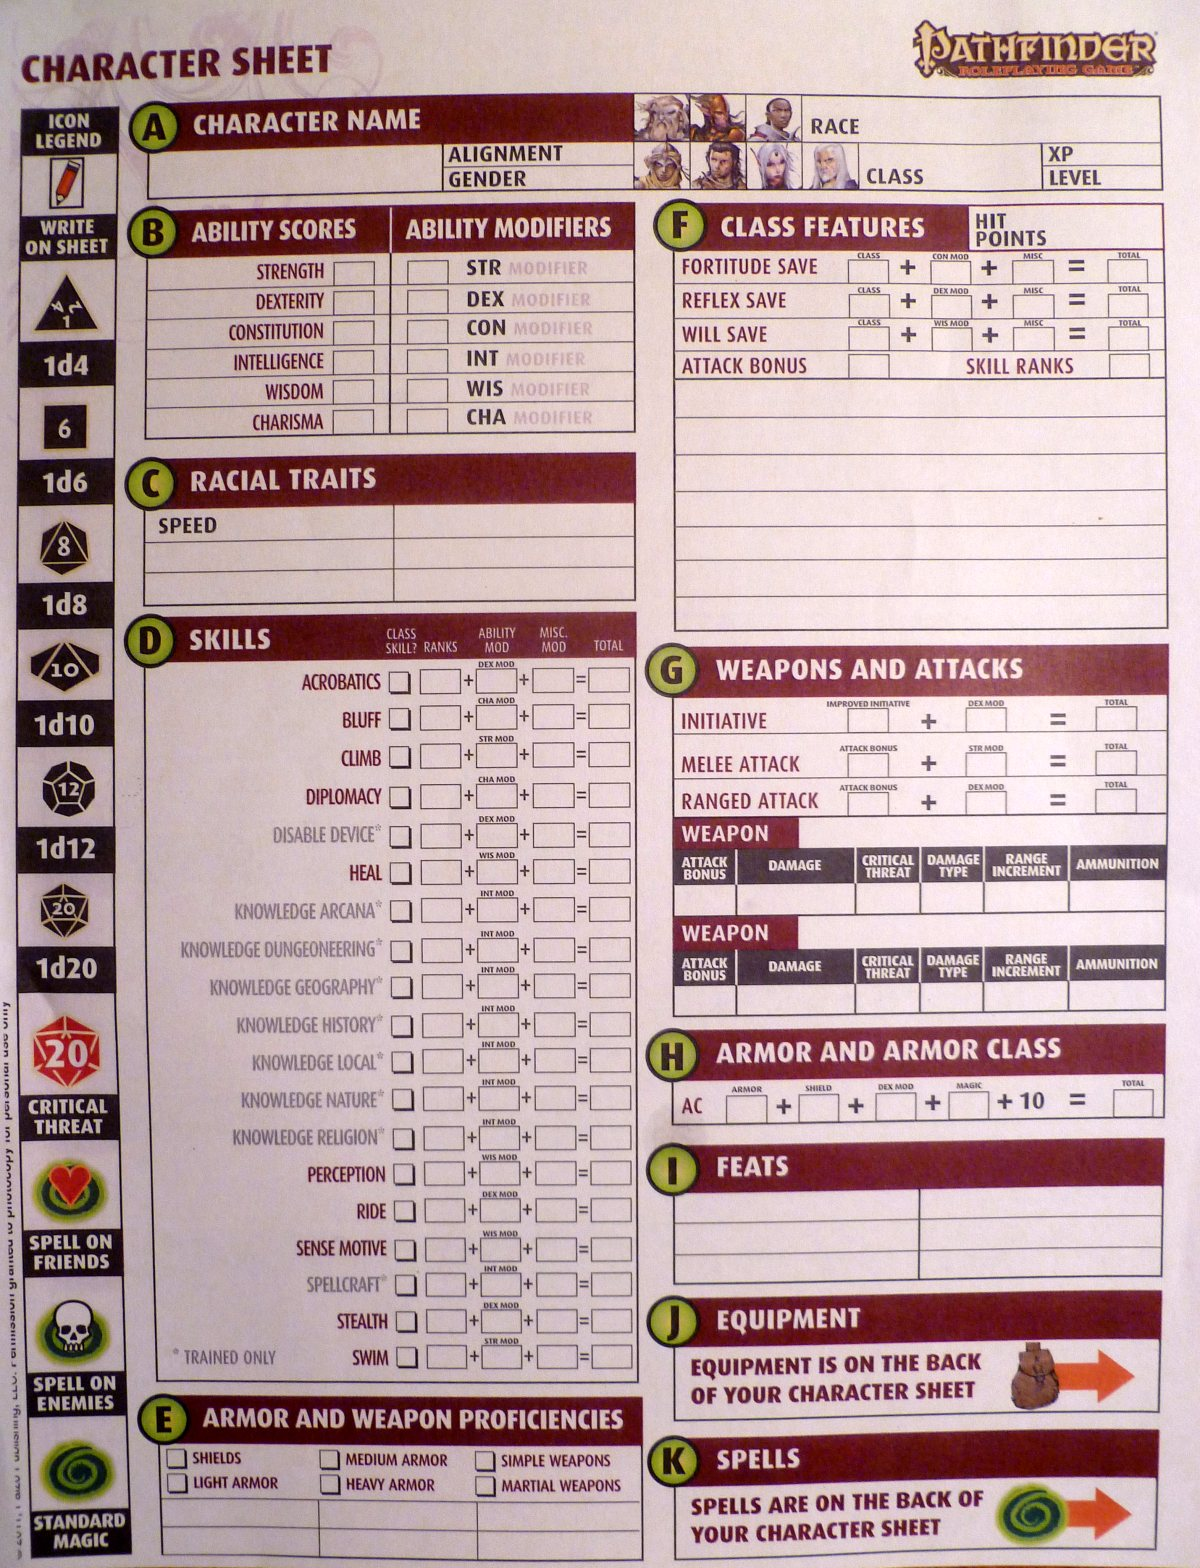 Dungeons & Dragons Reveals Its Latest Character Sheet - Update